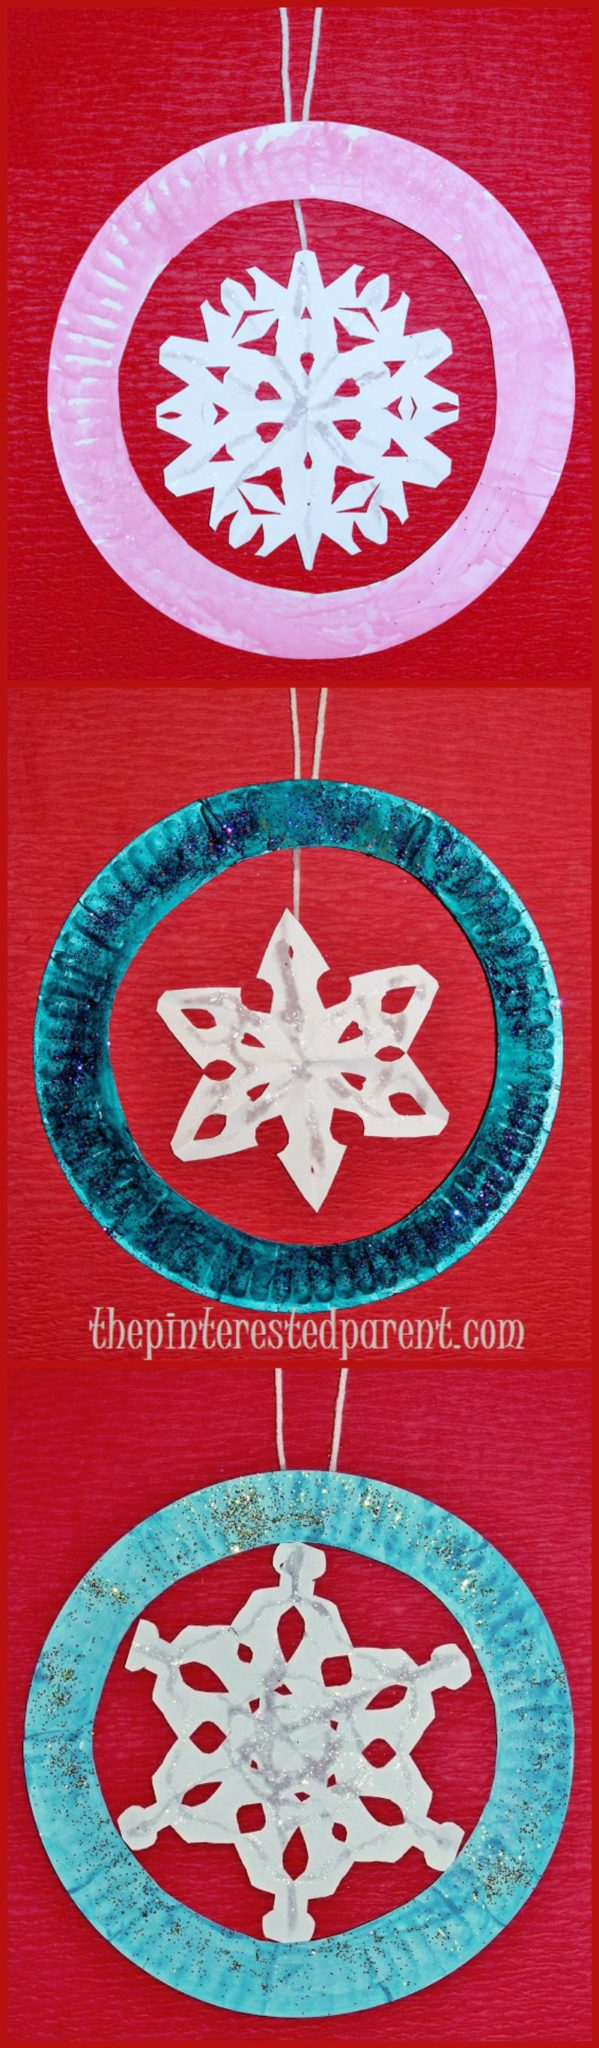 Paper plate snowflake ornament crafts fun winter for Winter crafts for children